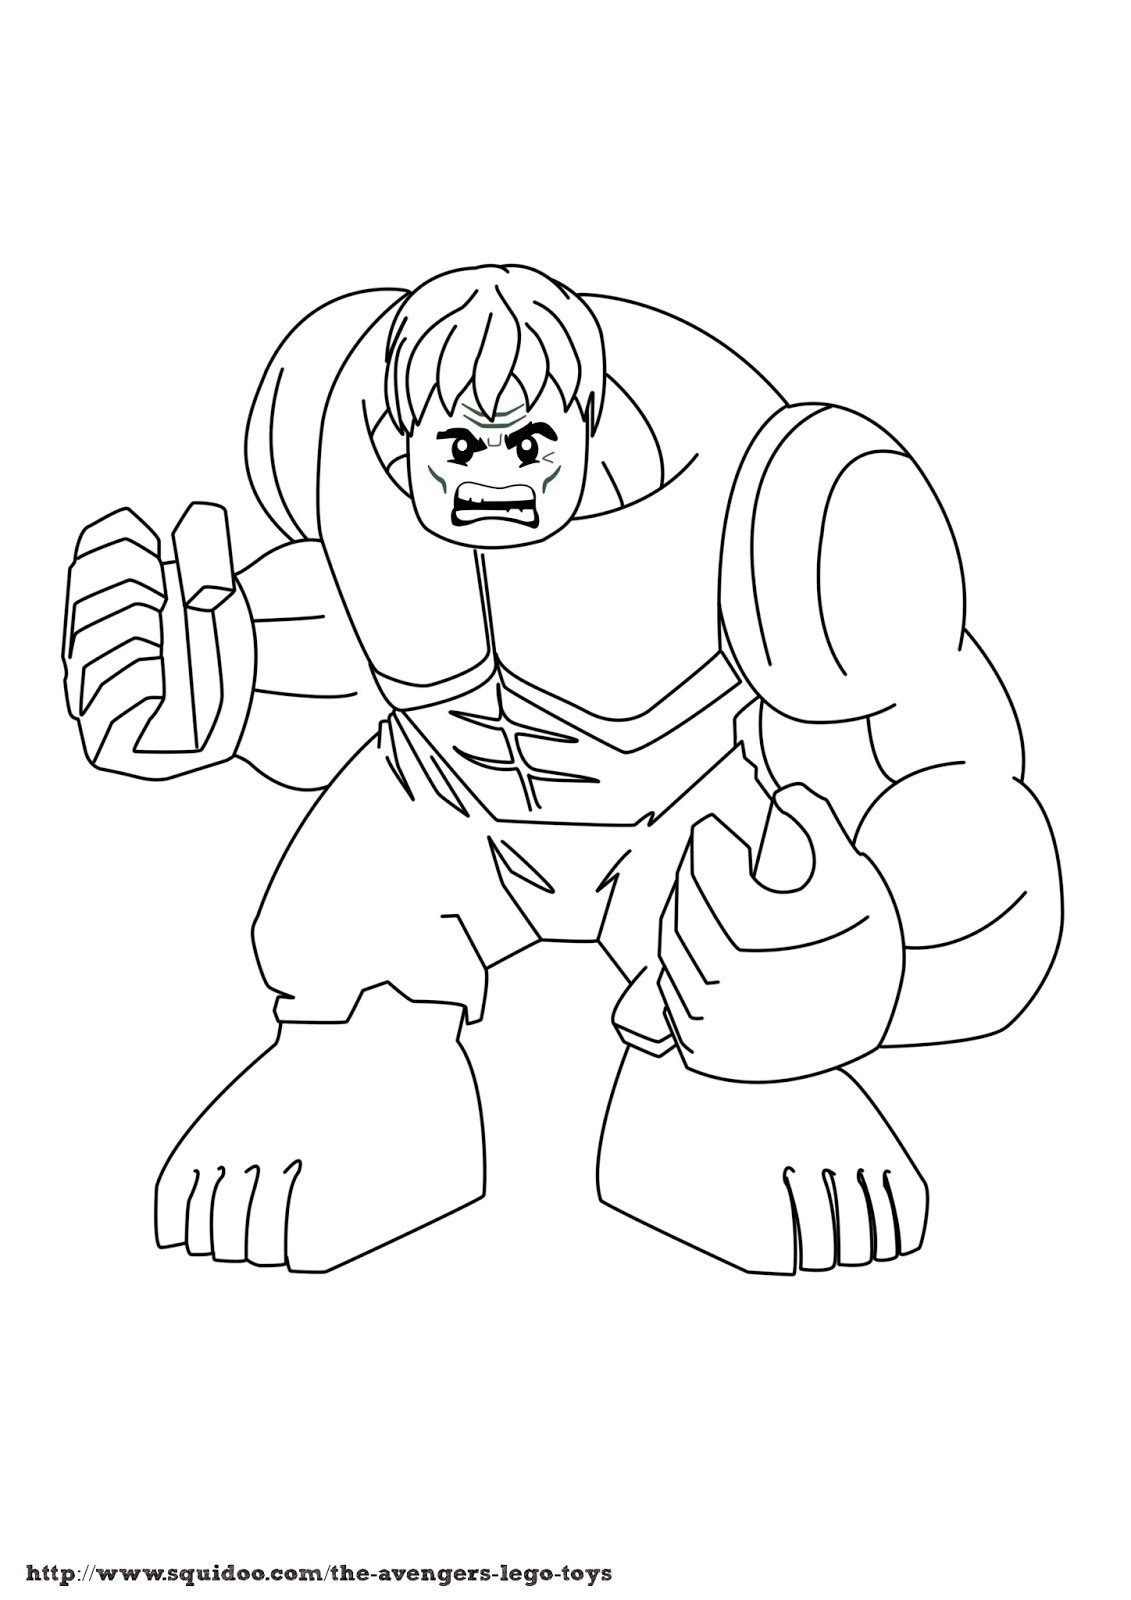 spider hulk coloring pages - photo#24